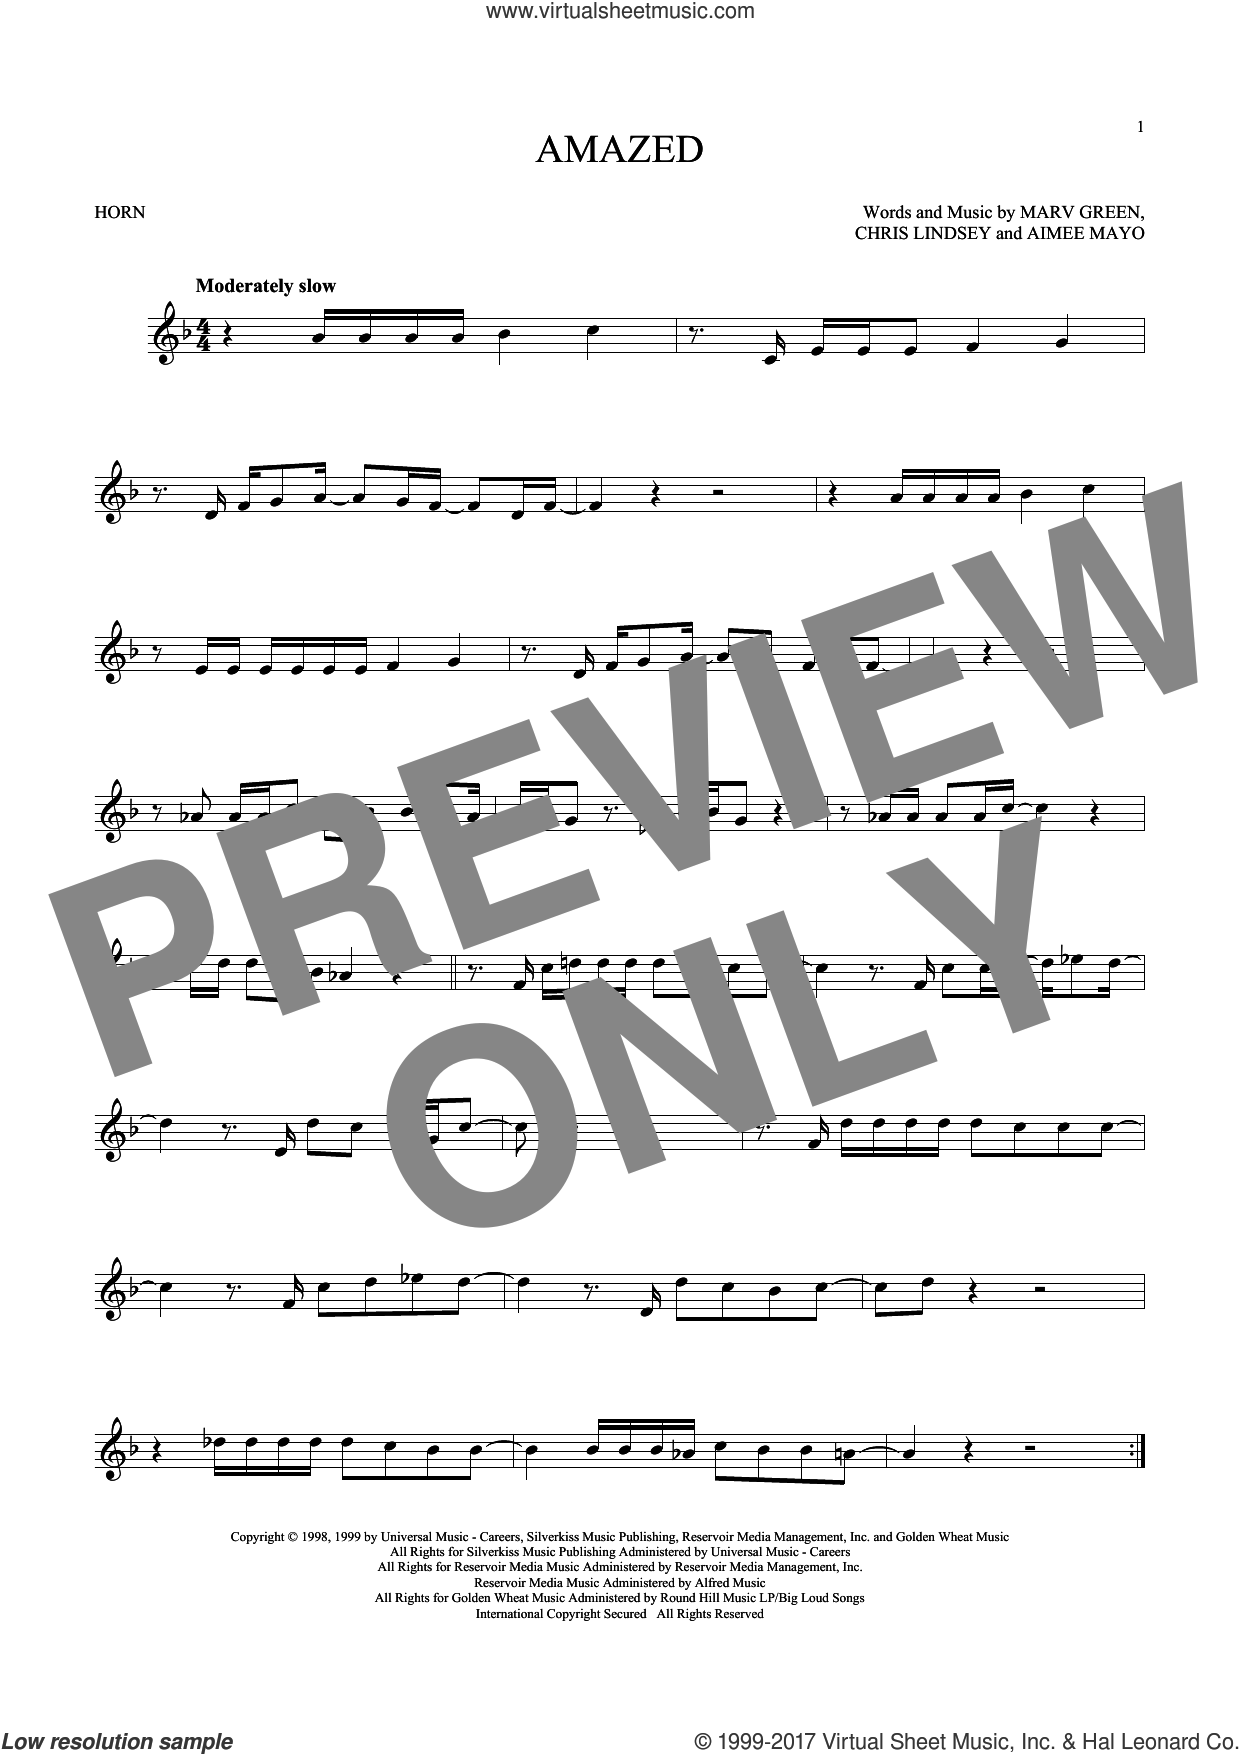 Amazed sheet music for horn solo by Lonestar, Aimee Mayo, Chris Lindsey and Marv Green, intermediate skill level